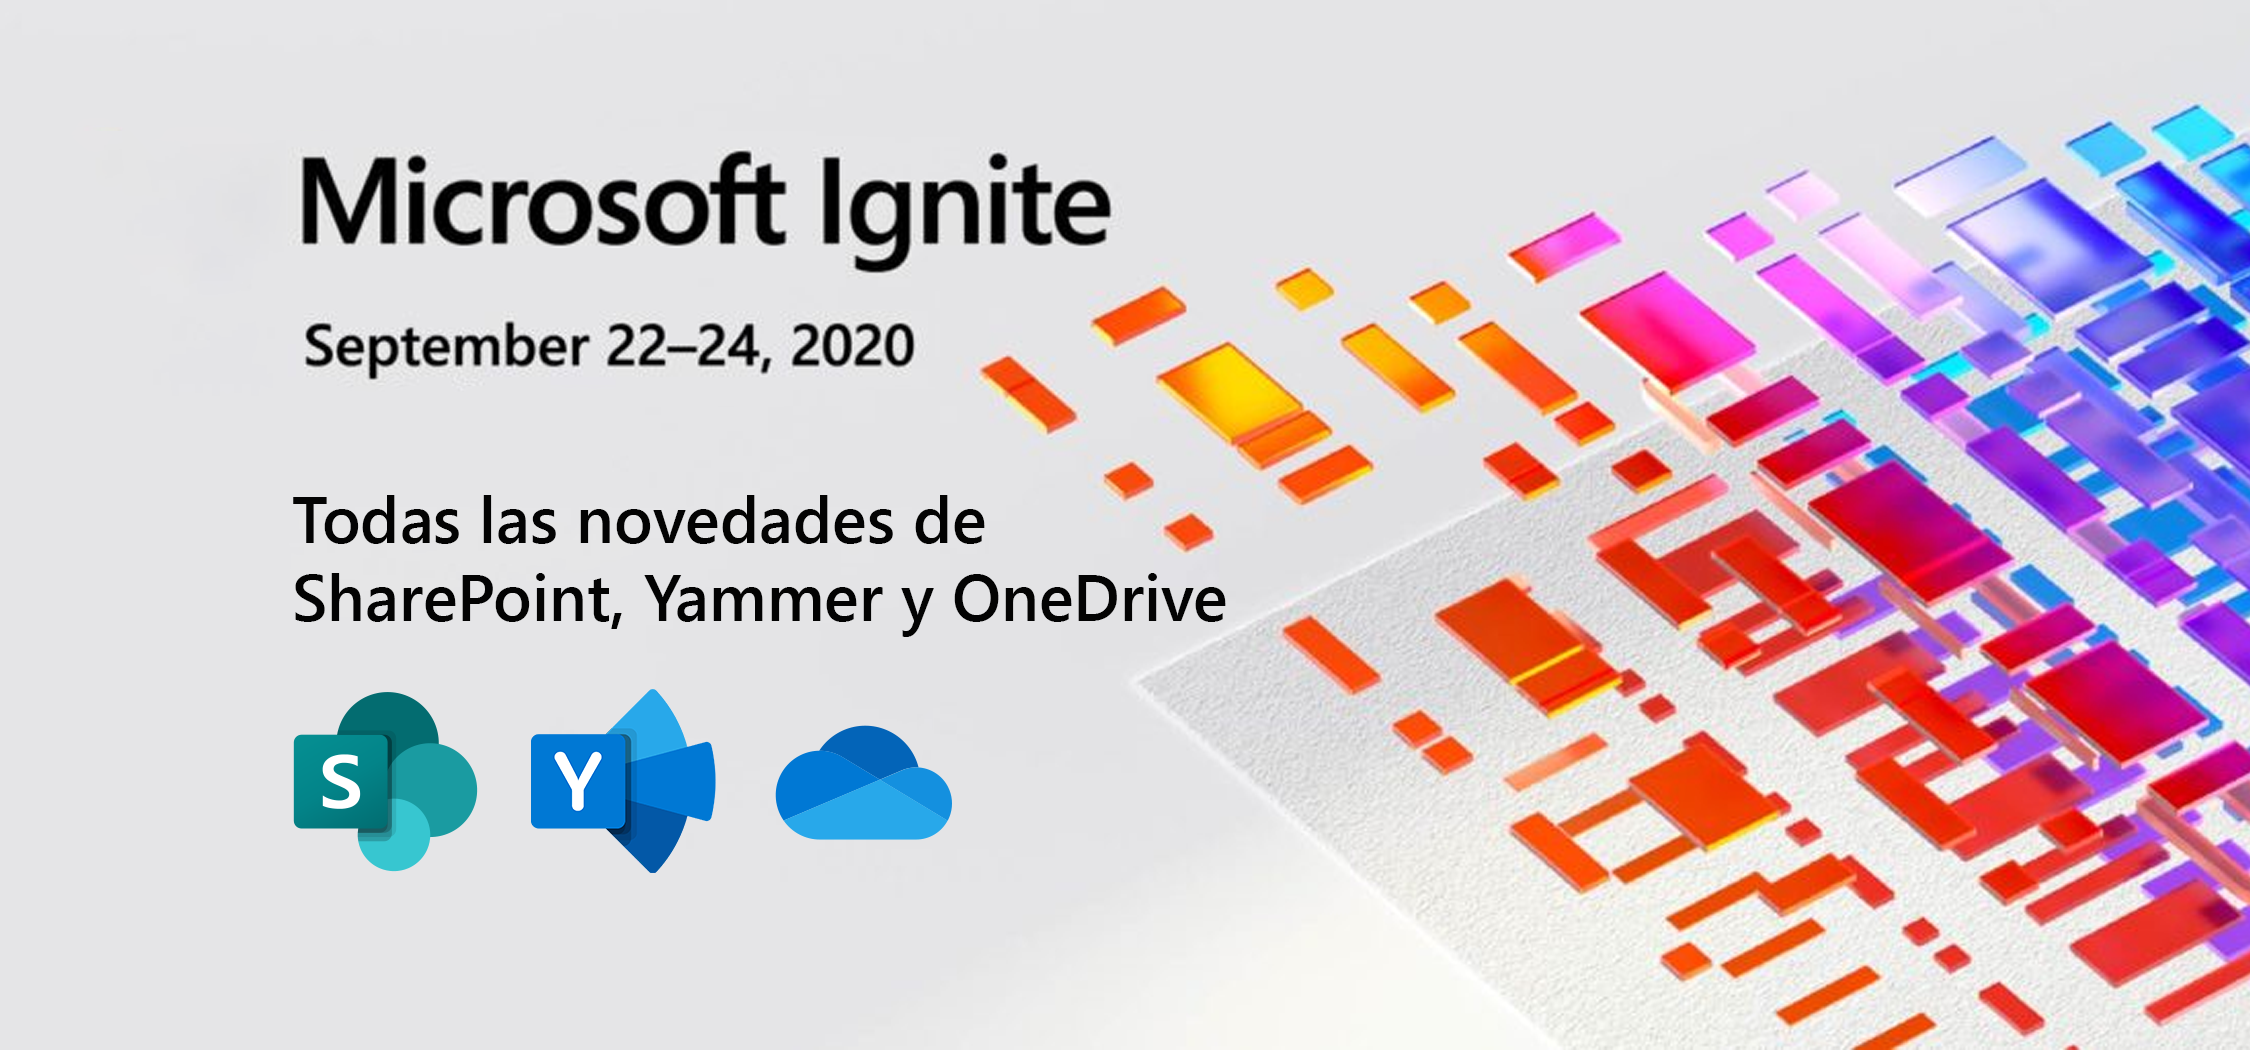 Ignite 2020: todas las novedades de SharePoint, Yammer y OneDrive